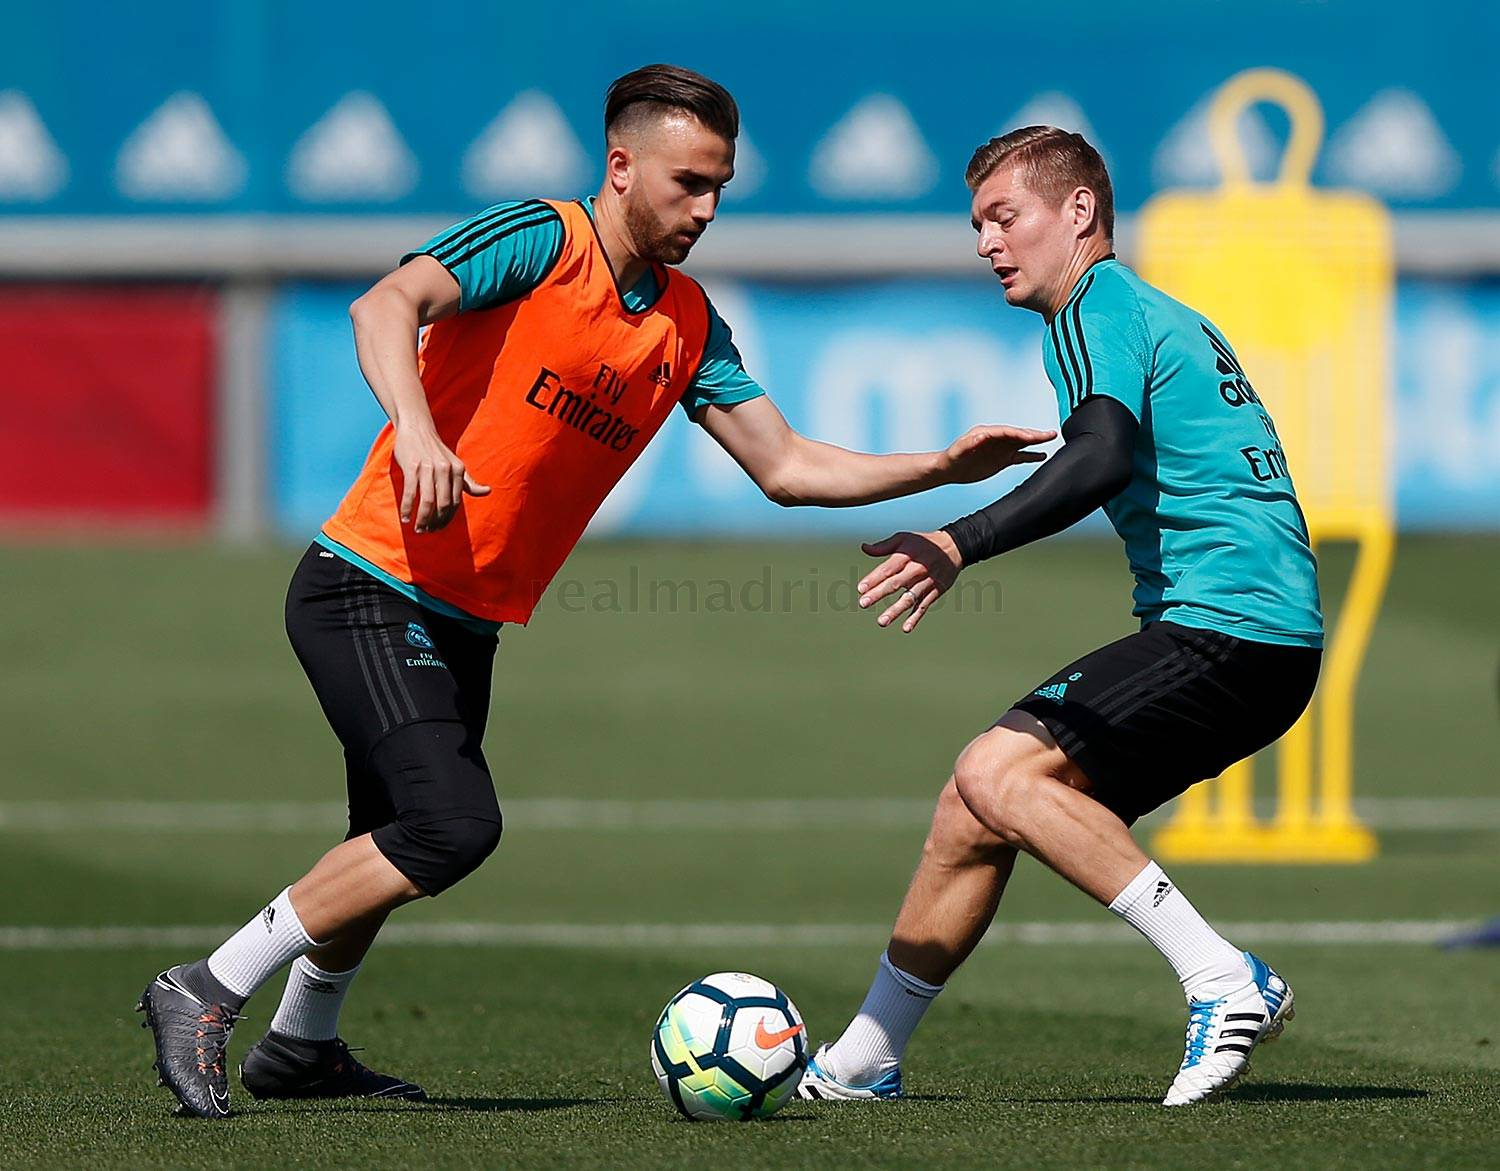 Real Madrid - Entrenamiento del Real Madrid - 08-05-2018